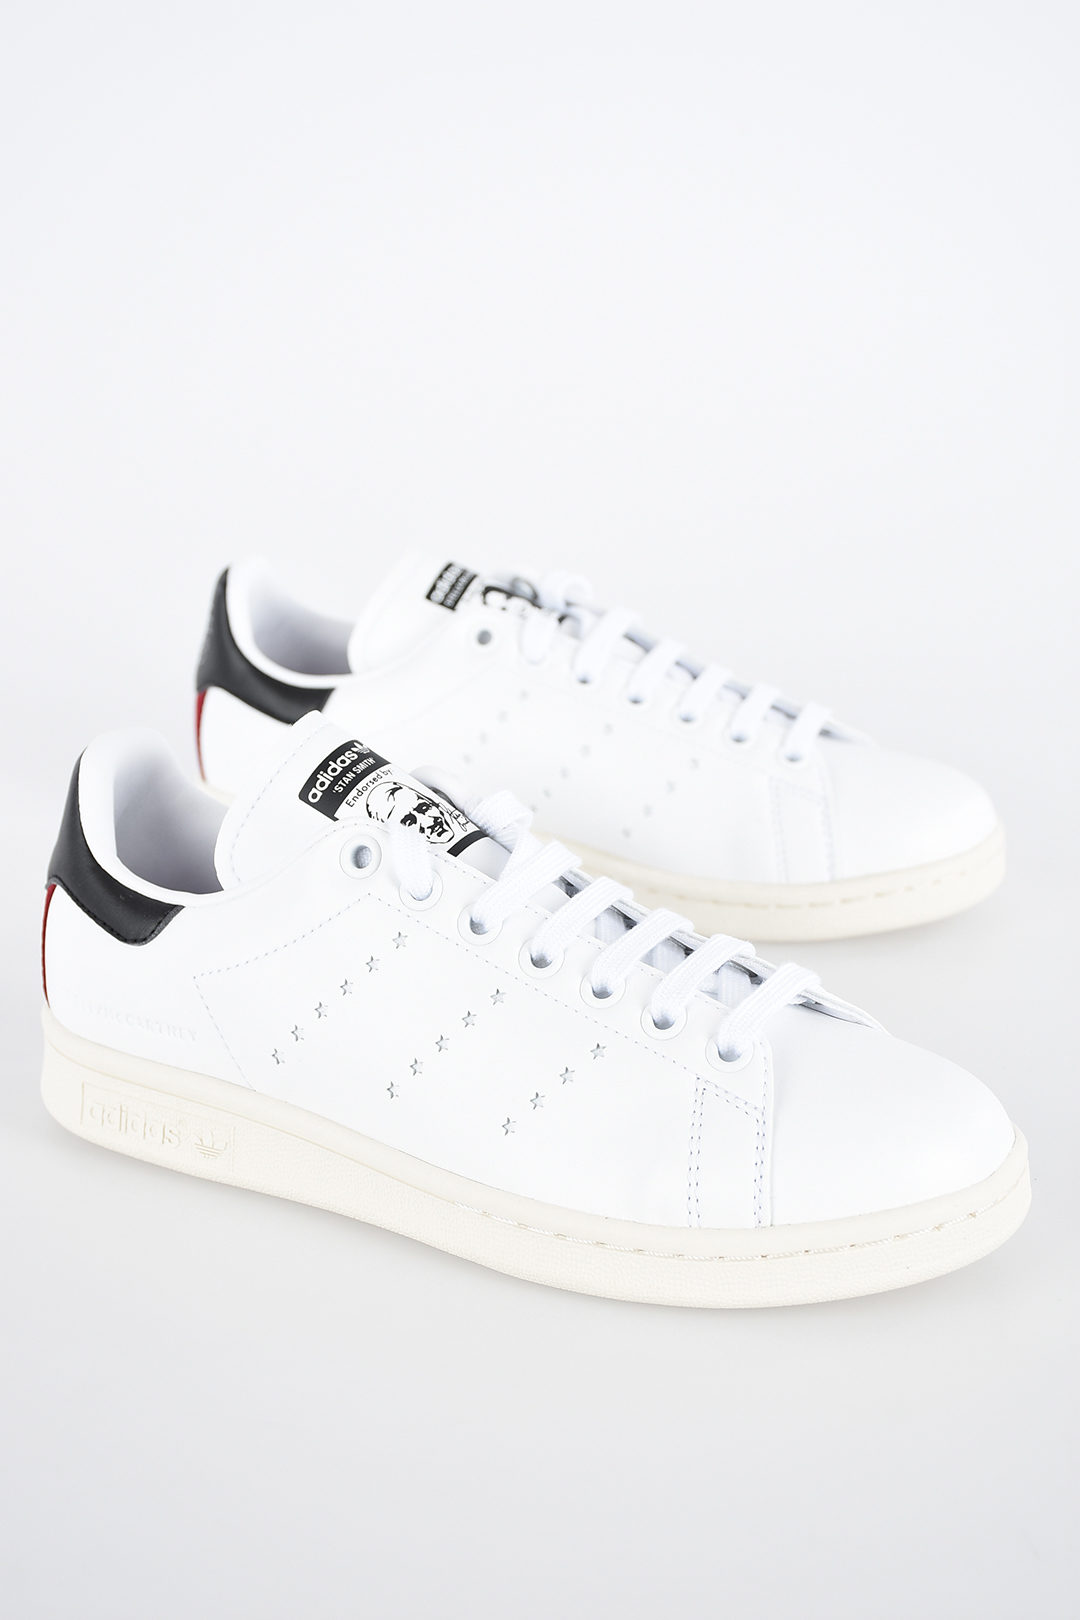 new concept 2de6d a7516 STELLA McCARTNEY Rubber STAN SMITH Sneakers